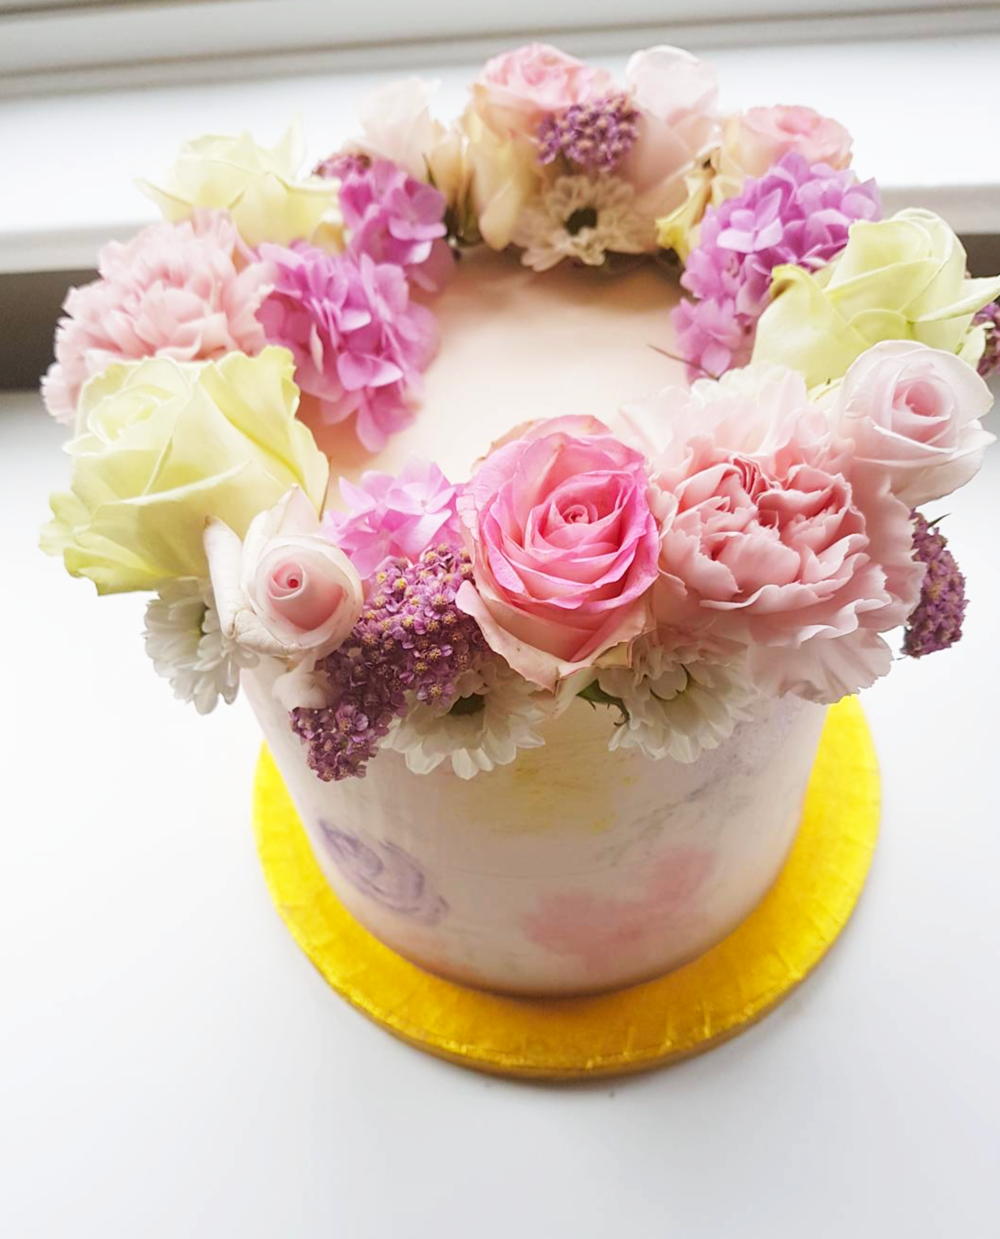 DOTTY ROSE CAKE DESIGN WATERCOLOUR FLORAL BIRTHDAY CAKE.png